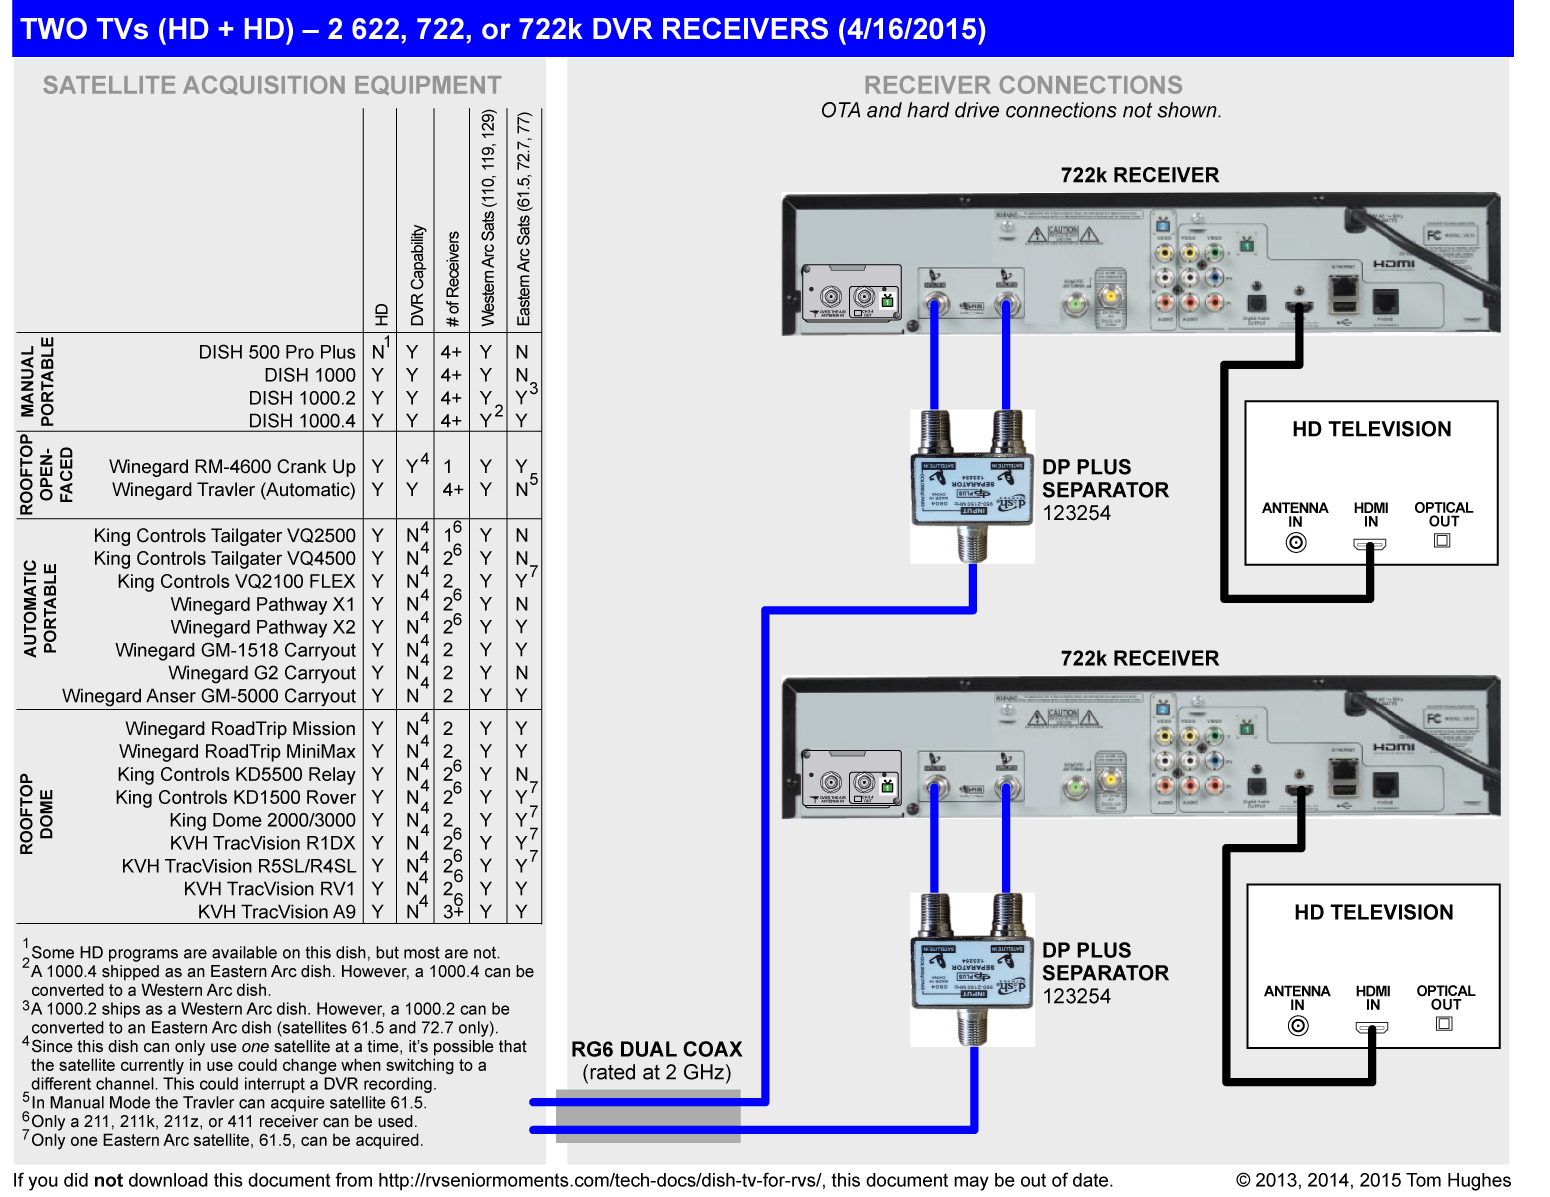 206_dish_twotvs_622_722_722k_hdhd720dpi wiring diagram dish network 722k readingrat net dish pro plus wiring diagram at aneh.co